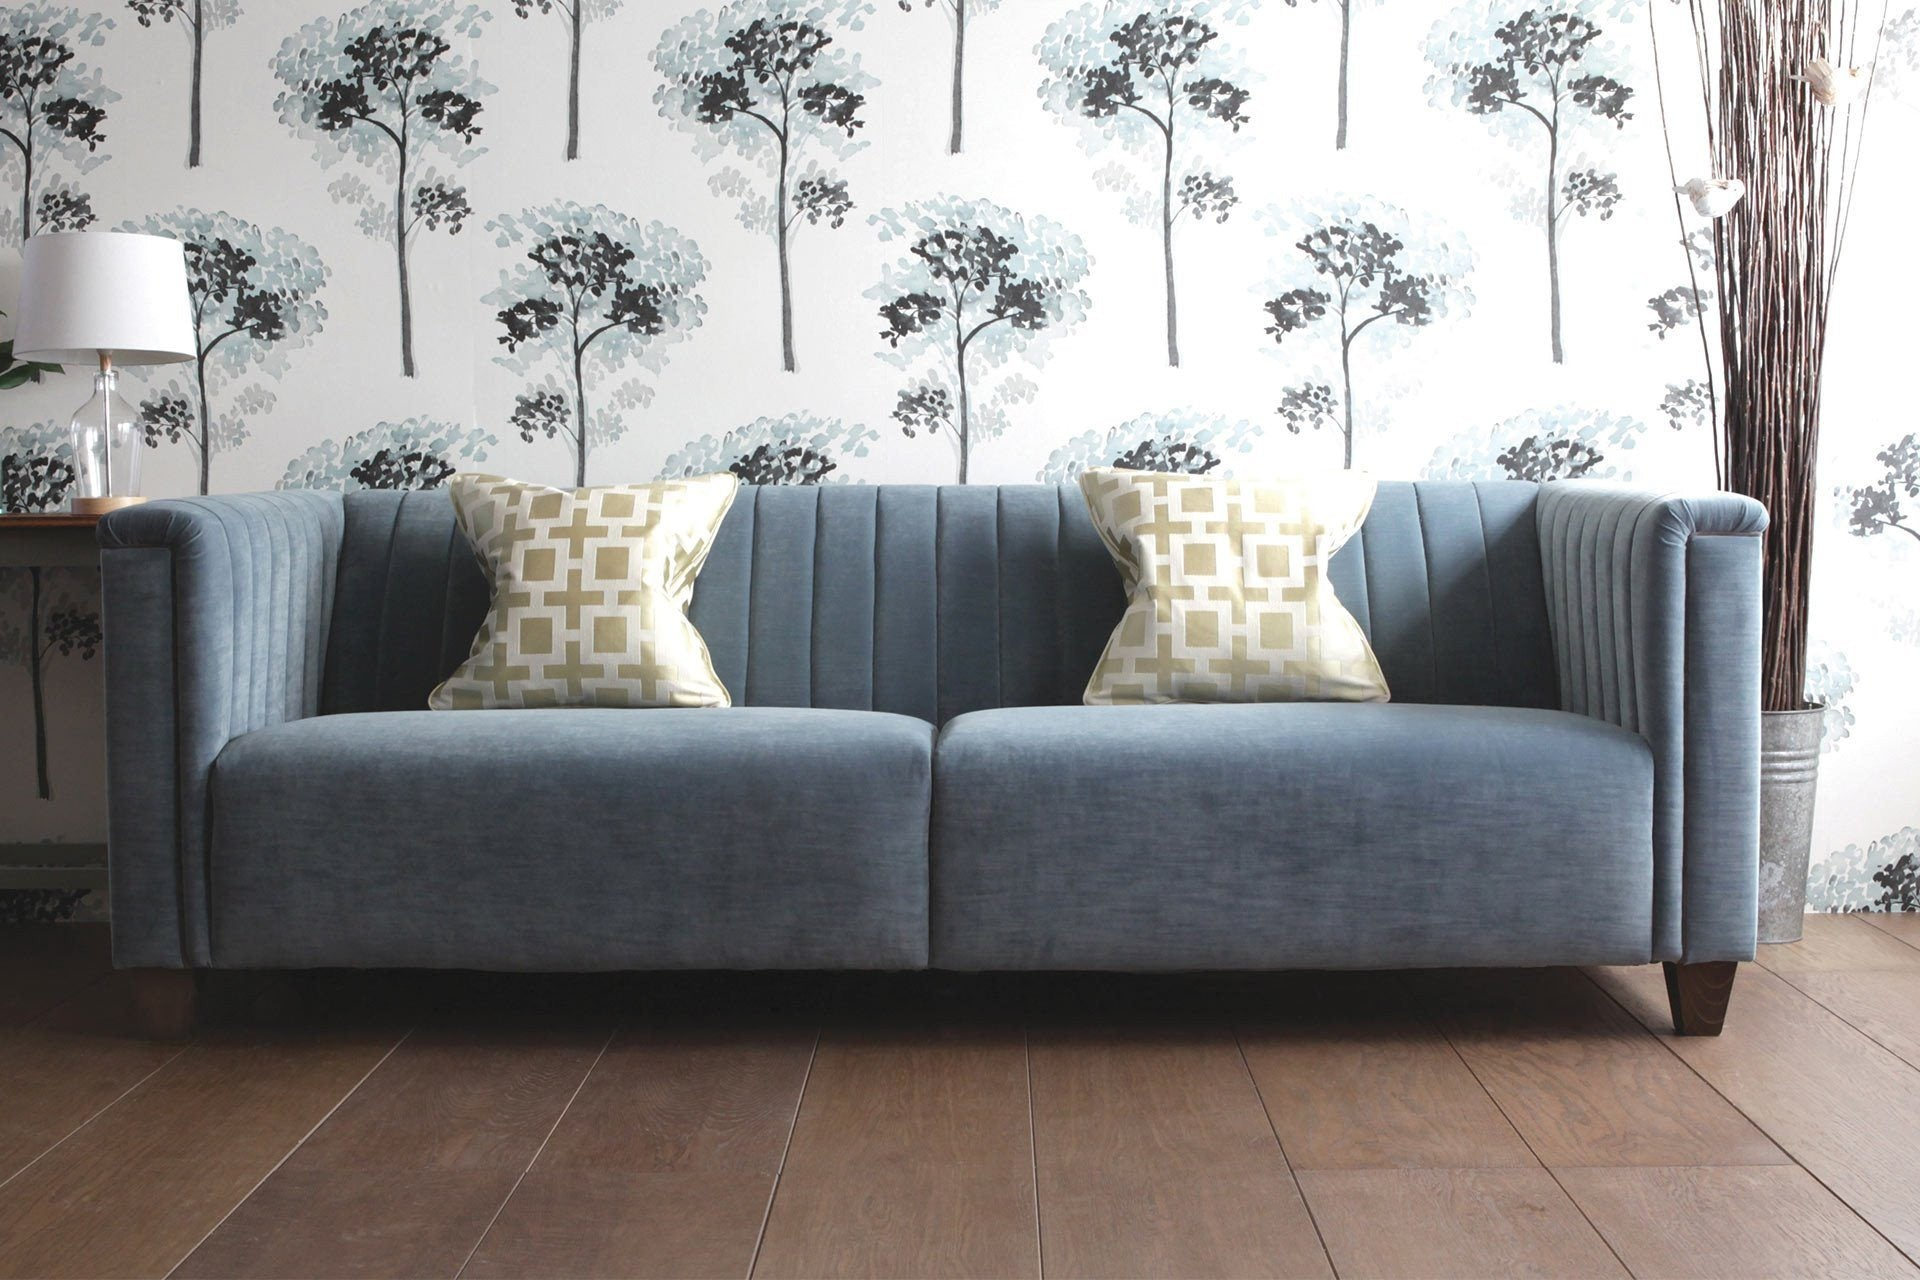 236cm Sofa With Ritzy Velvet Fabric In Delft Colour & Downing Celadon Cushions